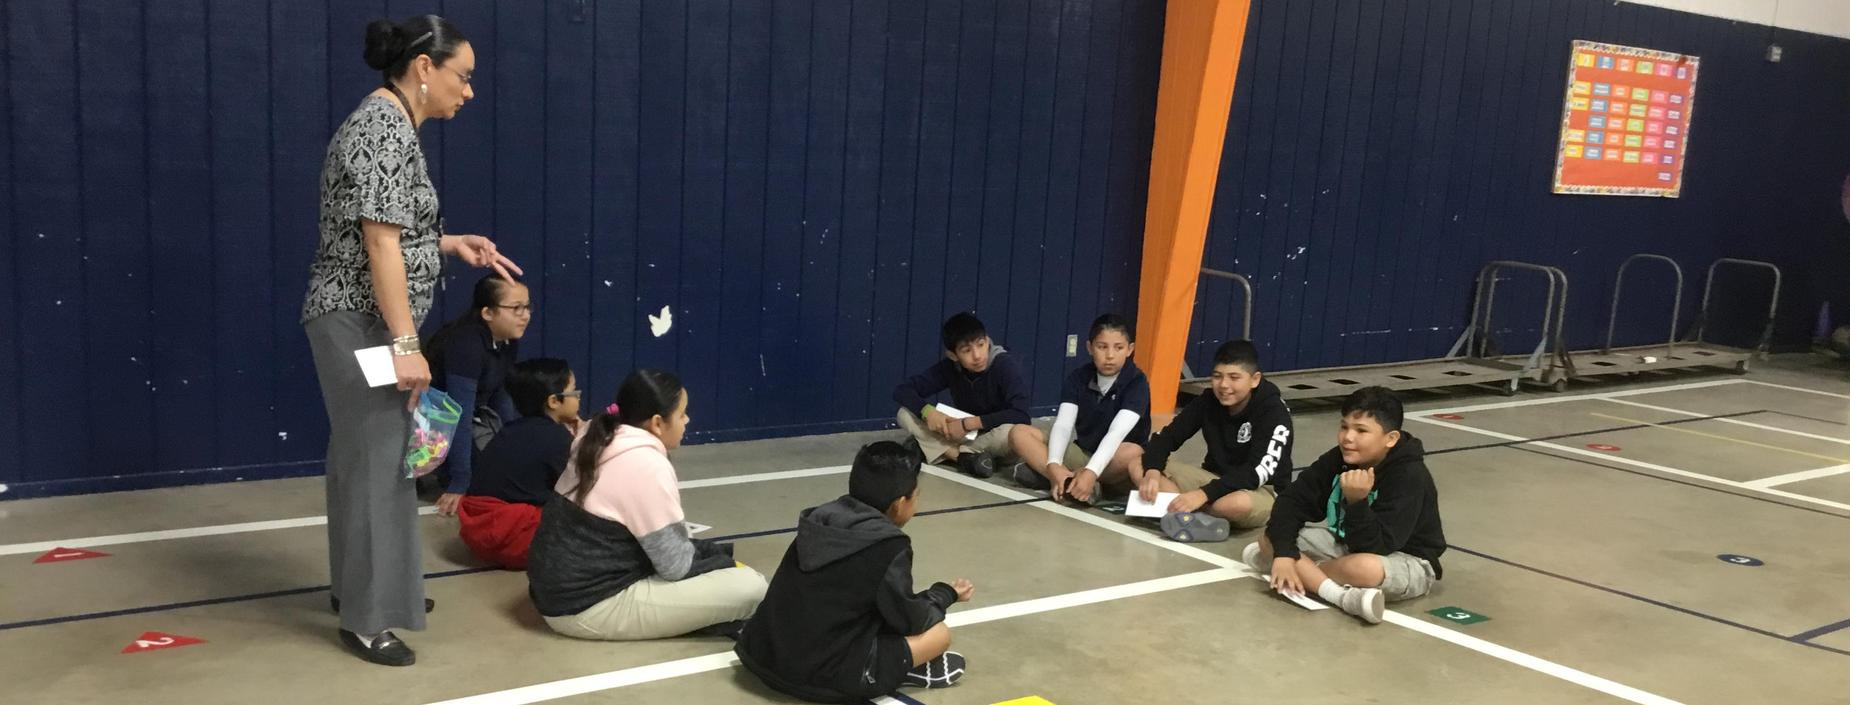 Image of students reviewing Science Vocabulary